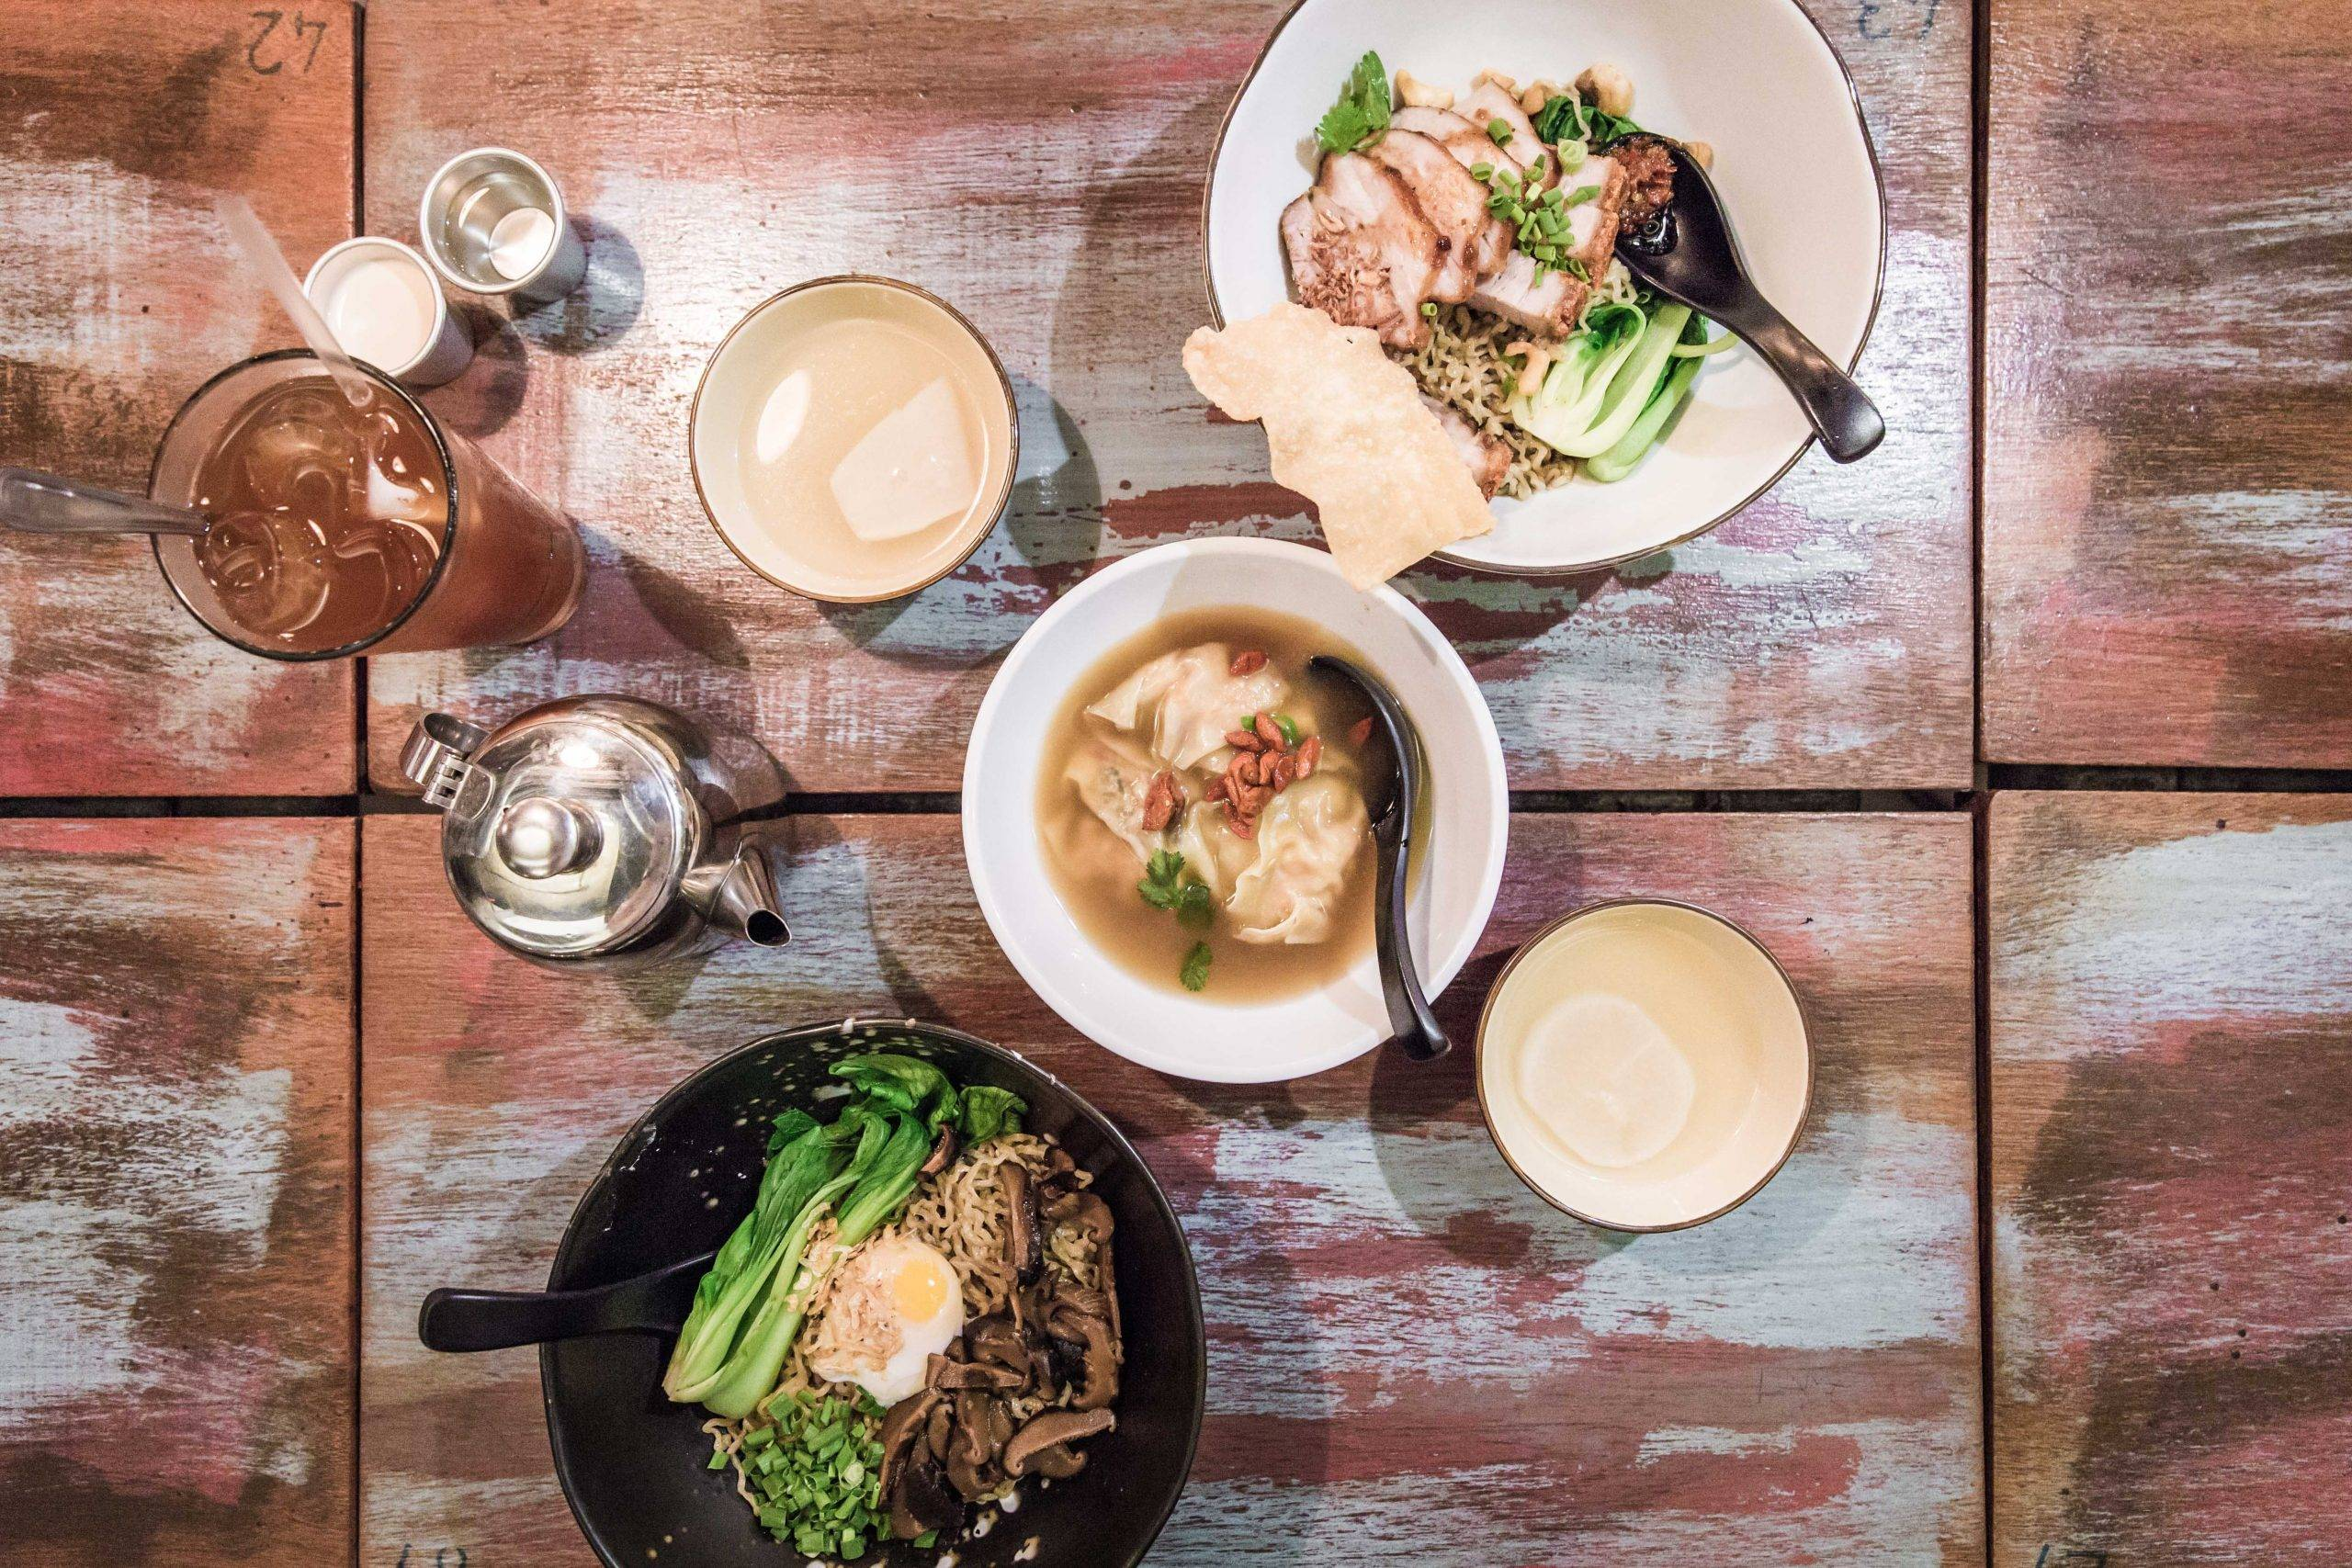 The Top 10 Restaurants to Try in Hong Kong